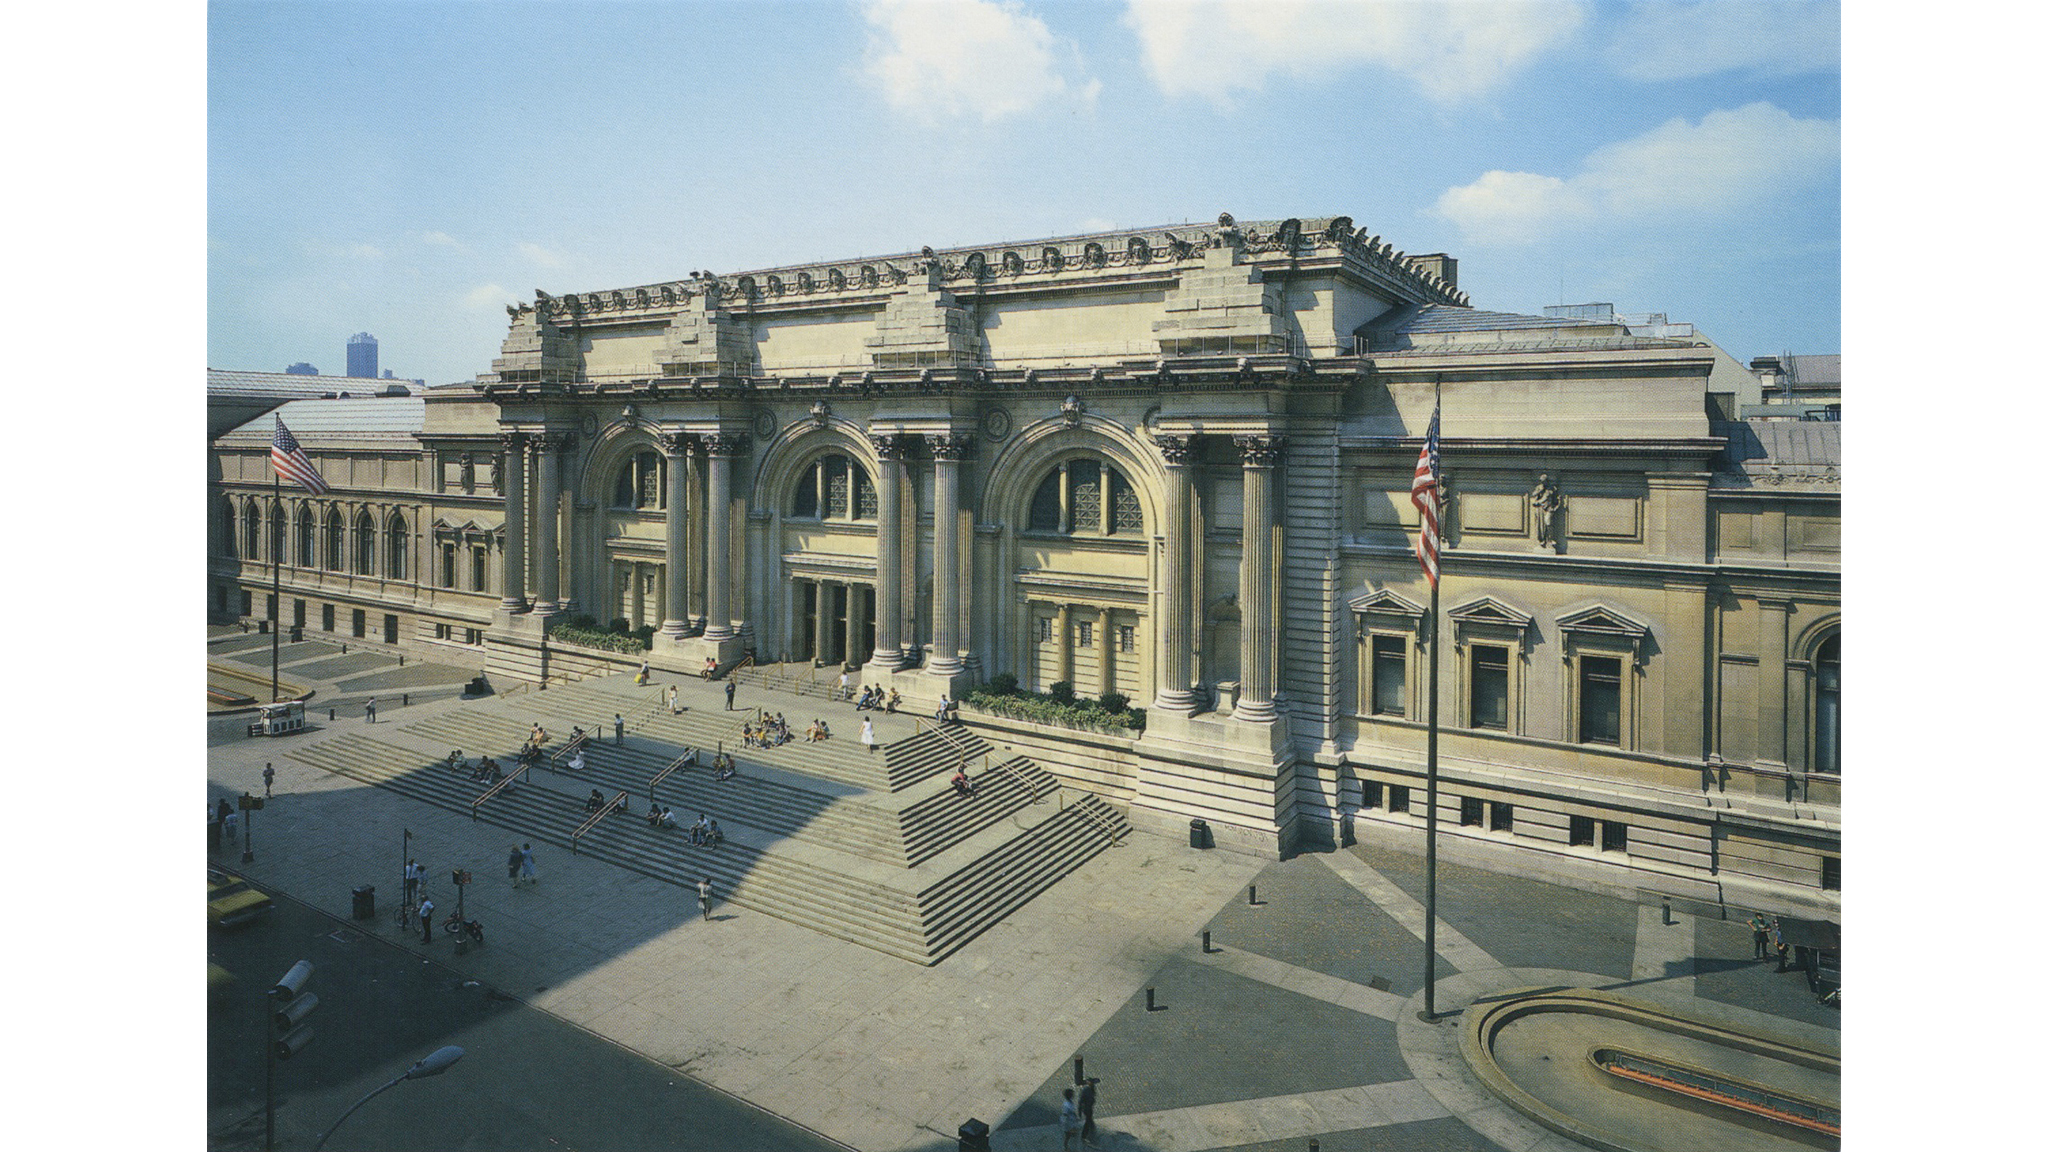 View of The Metropolitan Museum of Art